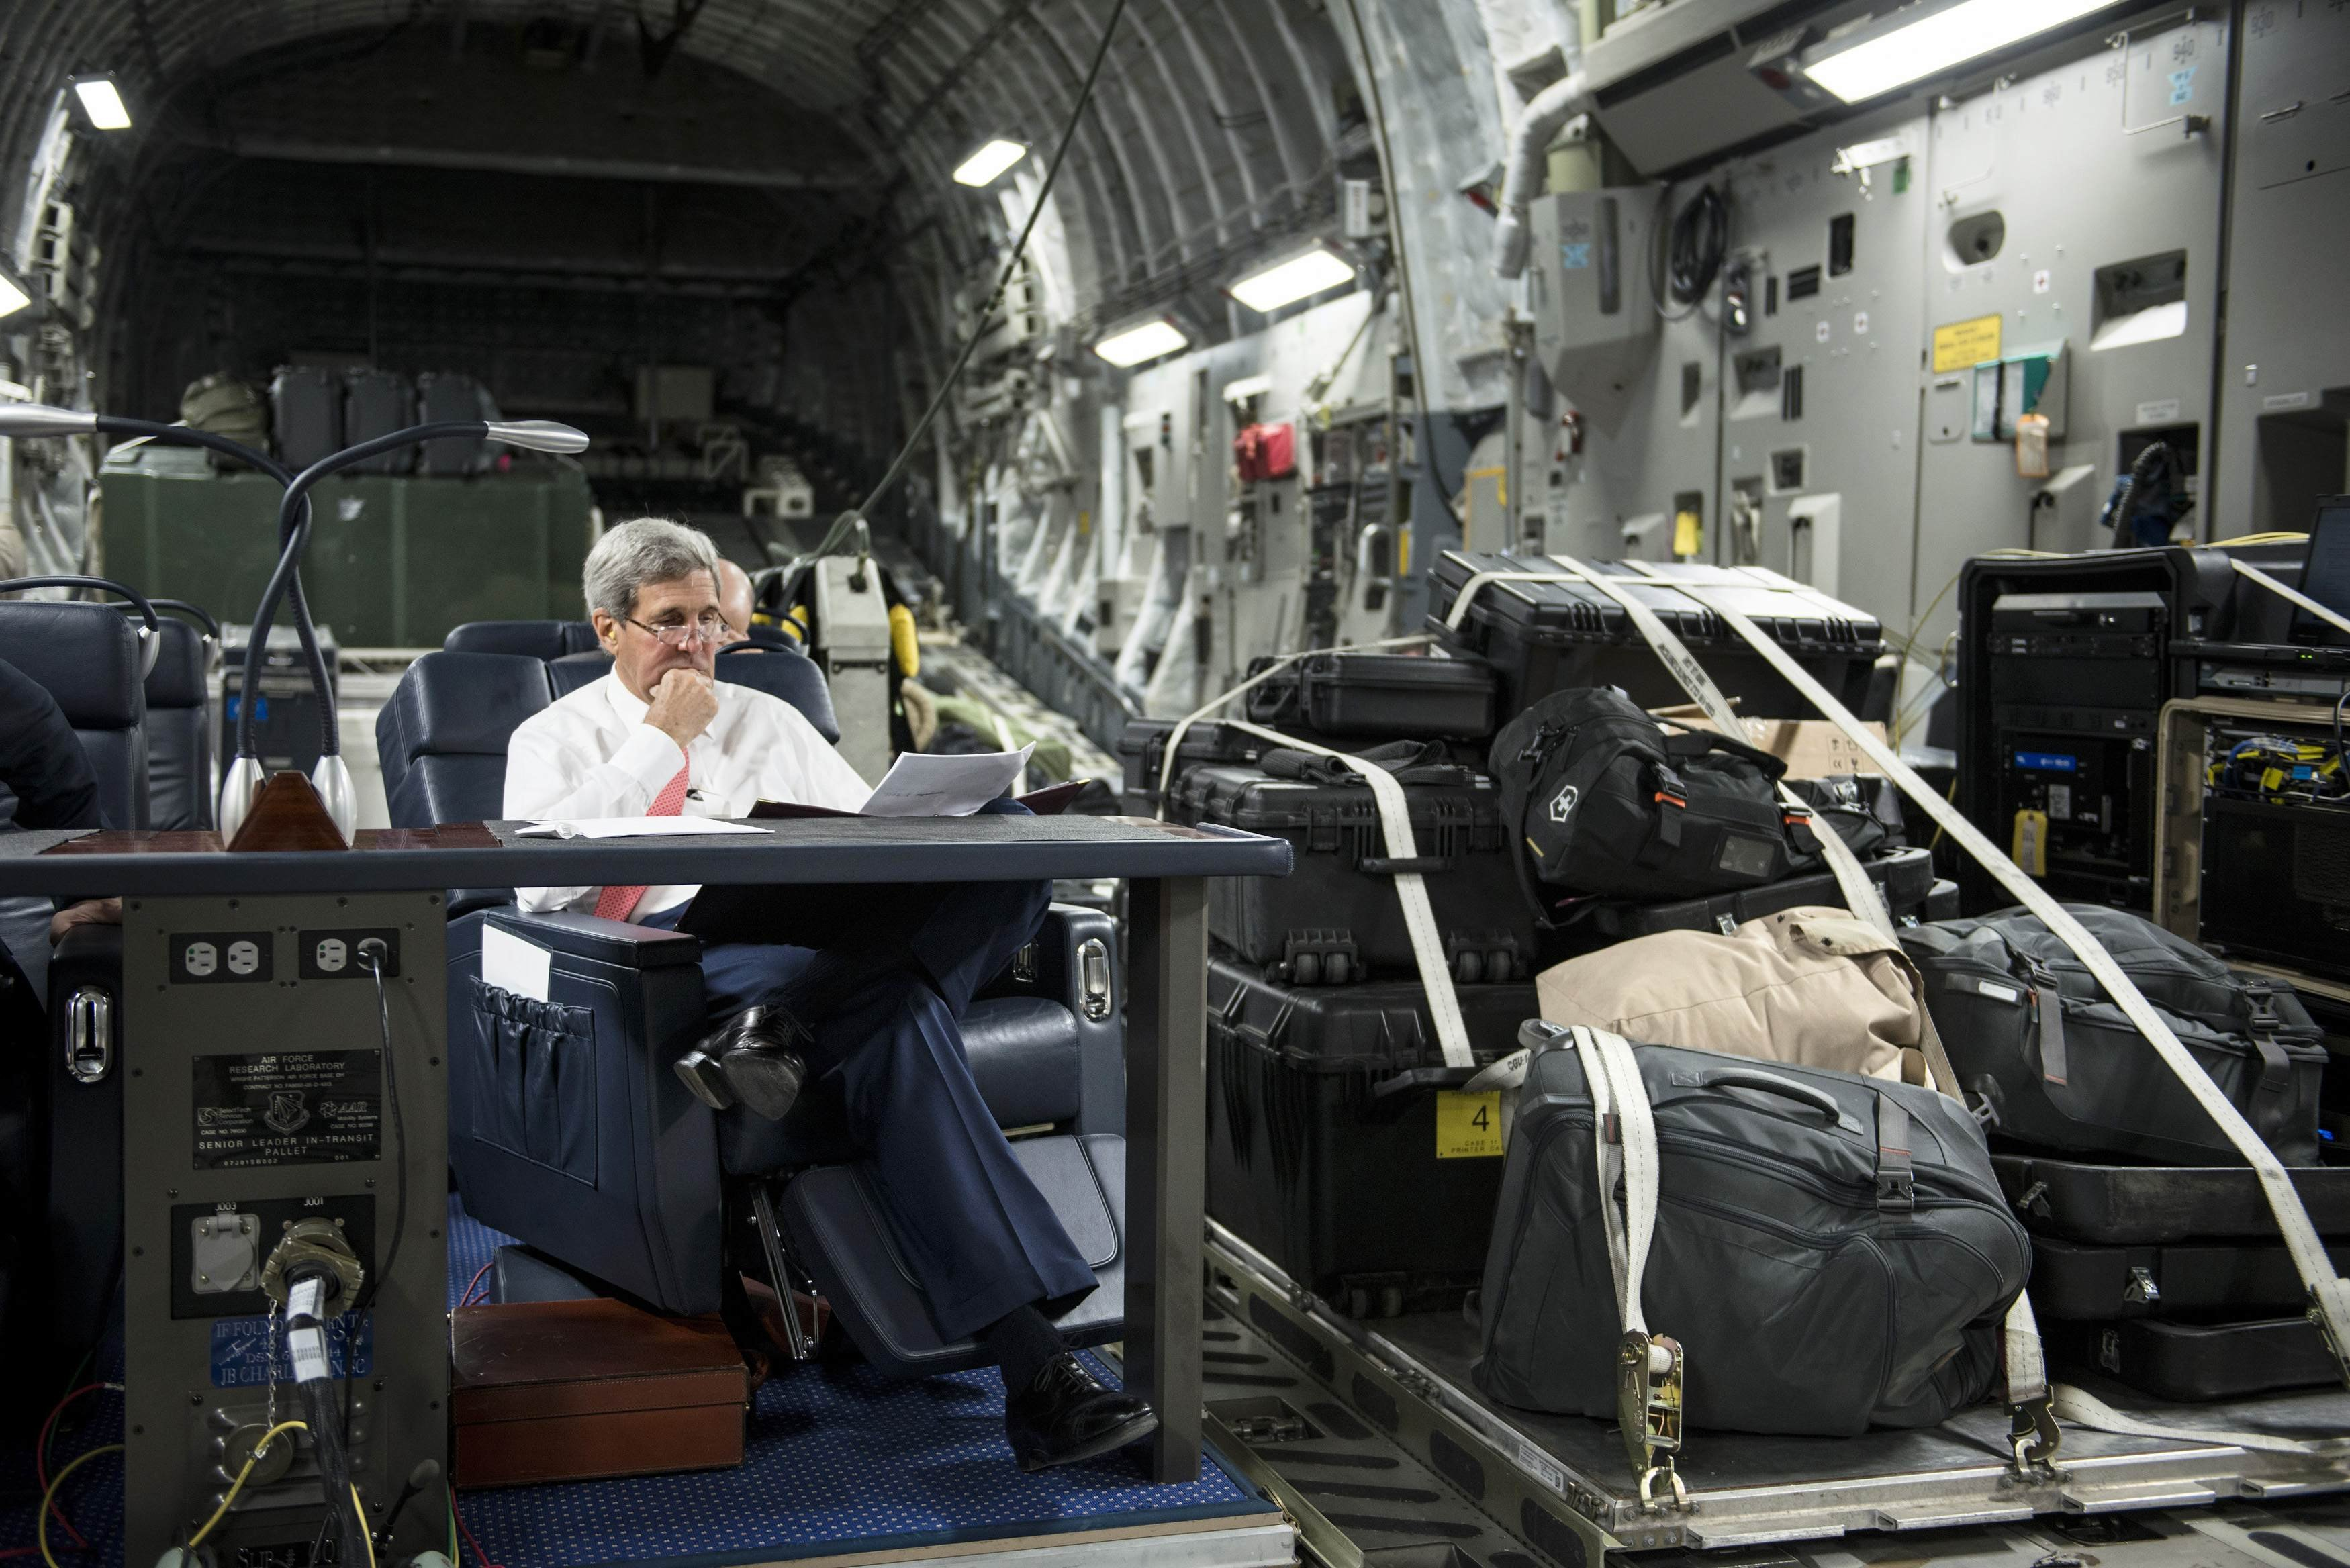 U.S. Secretary of State John Kerry looks over papers while flying from Jordan to Iraq on Sept. 10, 2014.